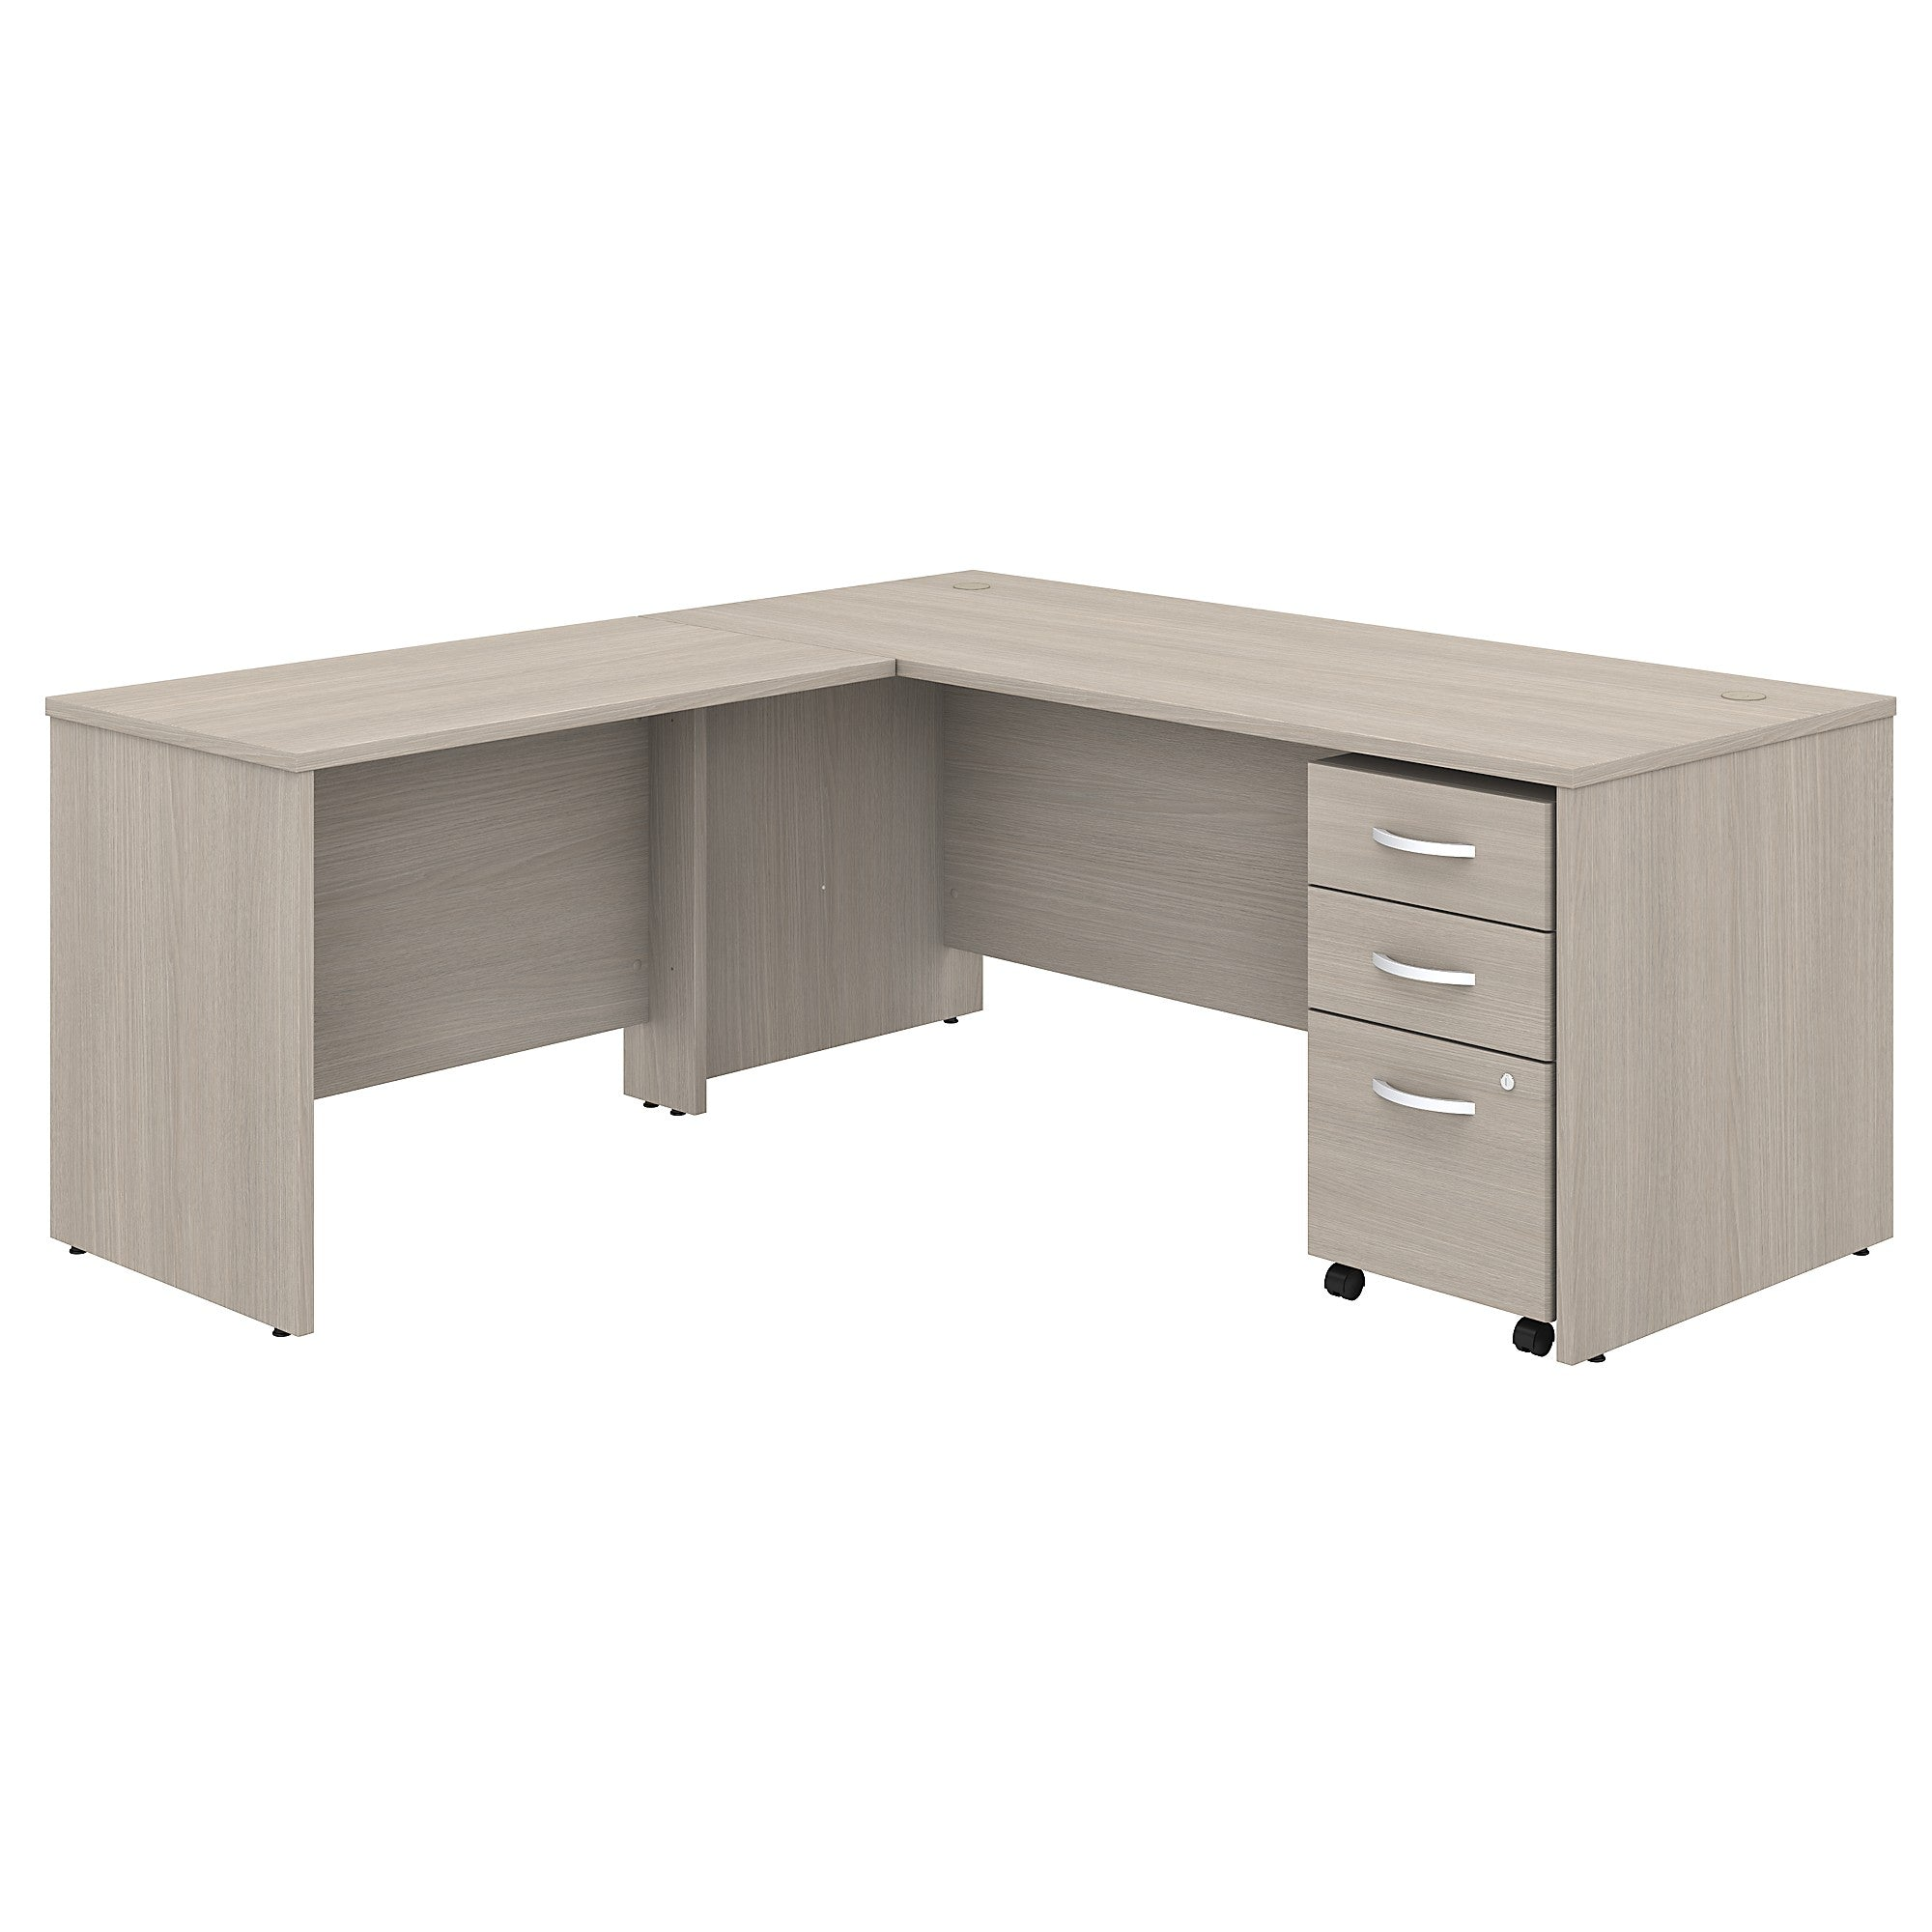 Studio C L Shaped Desk with Mobile File Cabinet & 42W Return- Sand Oak